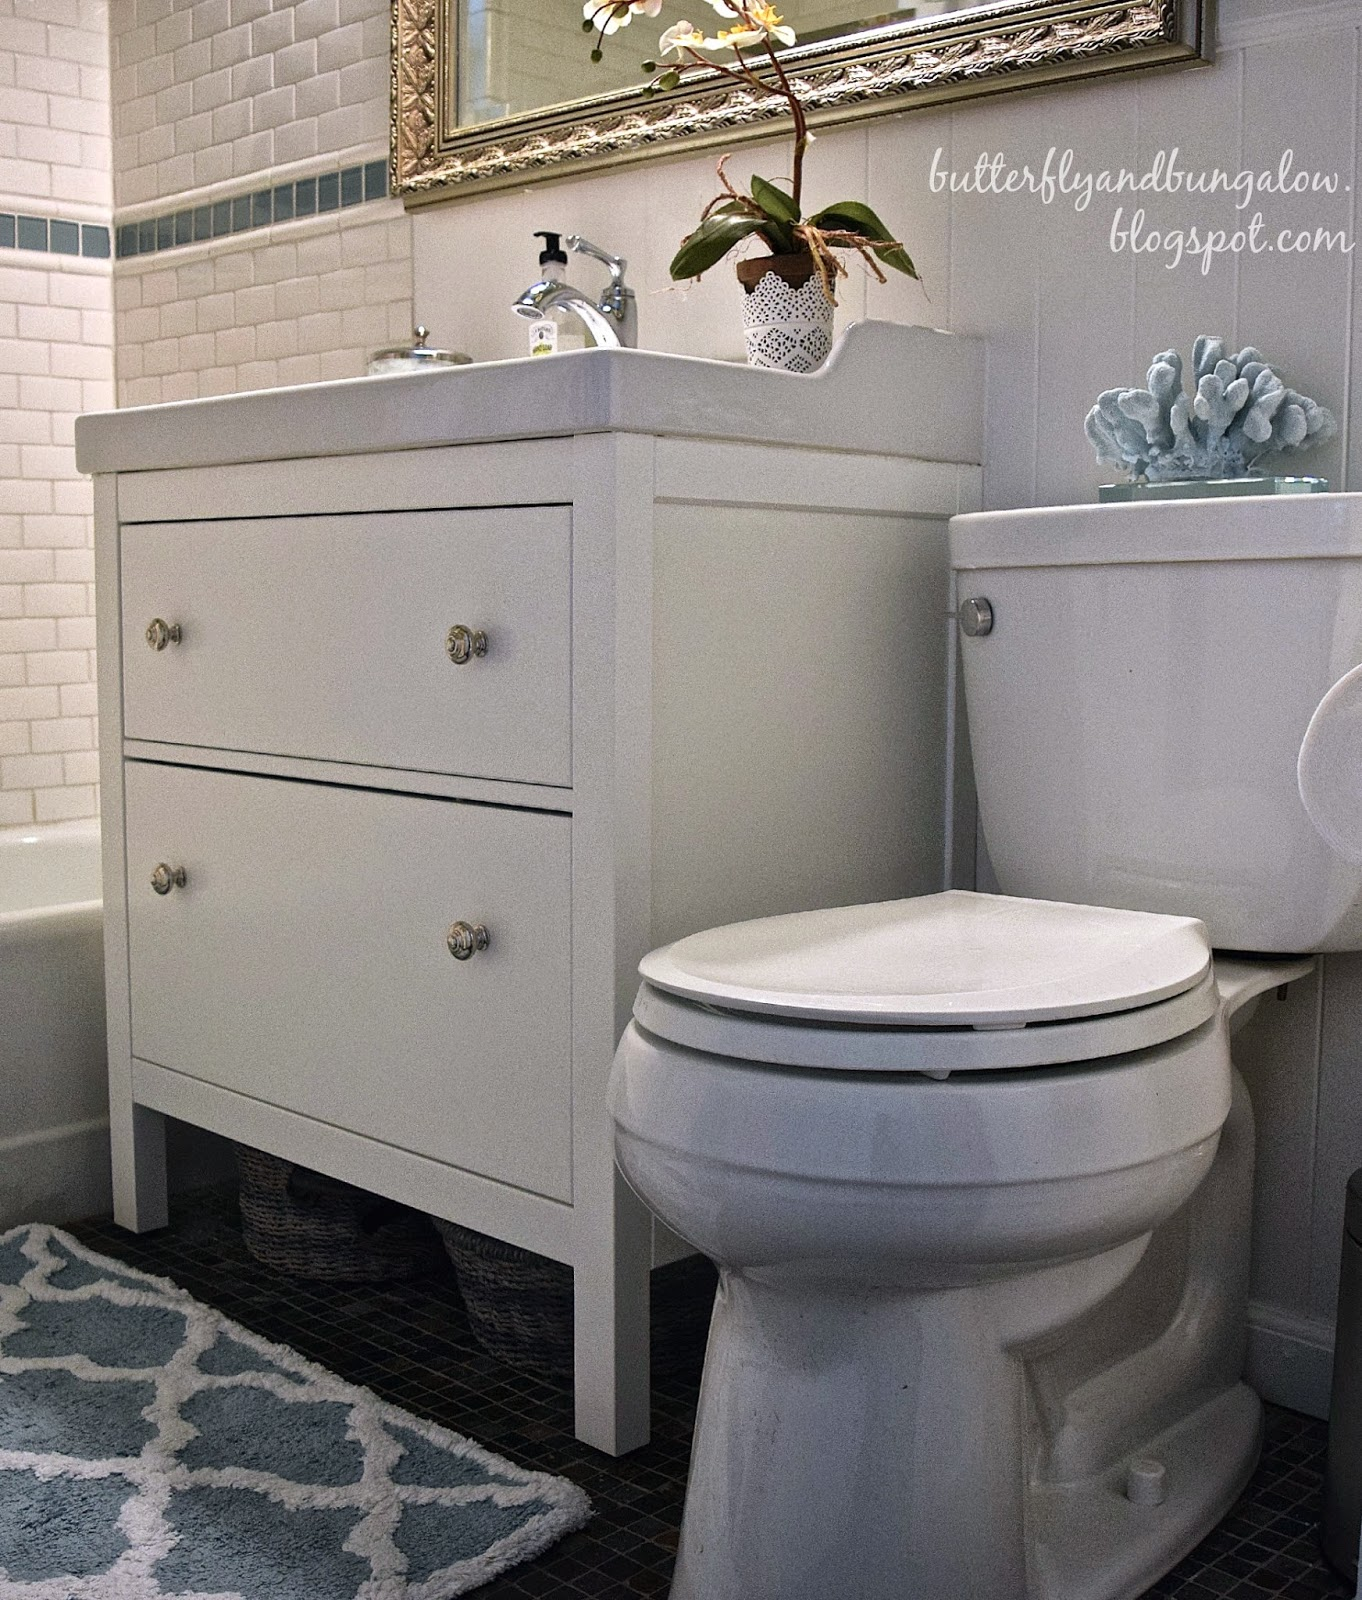 Quick Bathroom Remodel Butterfly 88 Bungalow Affordable Cottage Bathroom Remodel